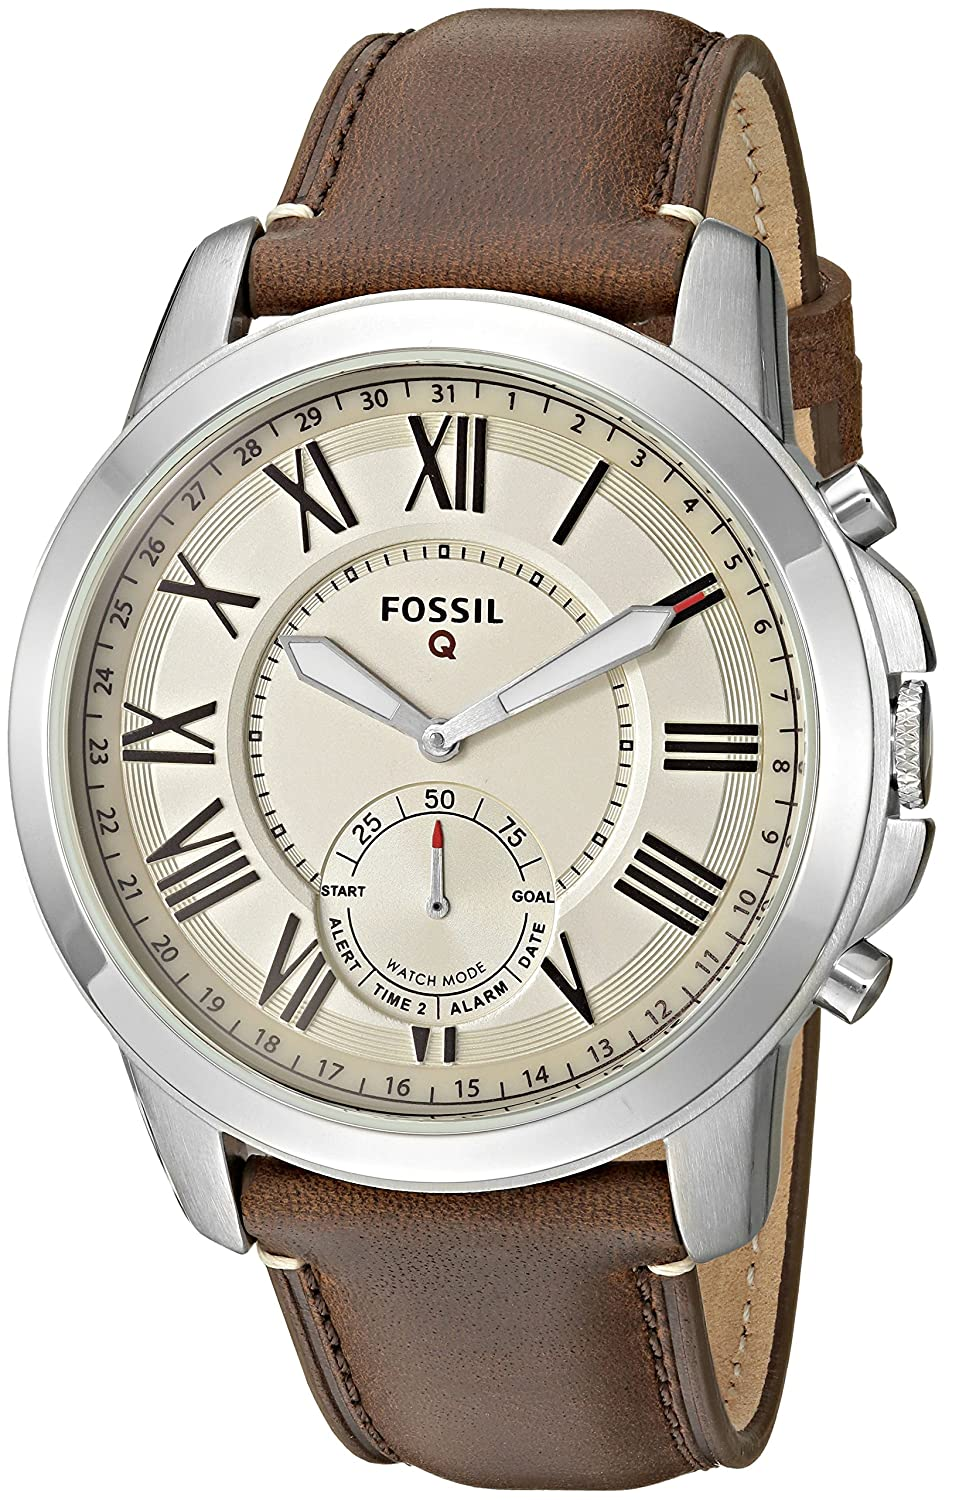 Fossil Mens Grant Stainless Steel and Leather Hybrid Smartwatch with Activity Tracking and Smartphone Notifications